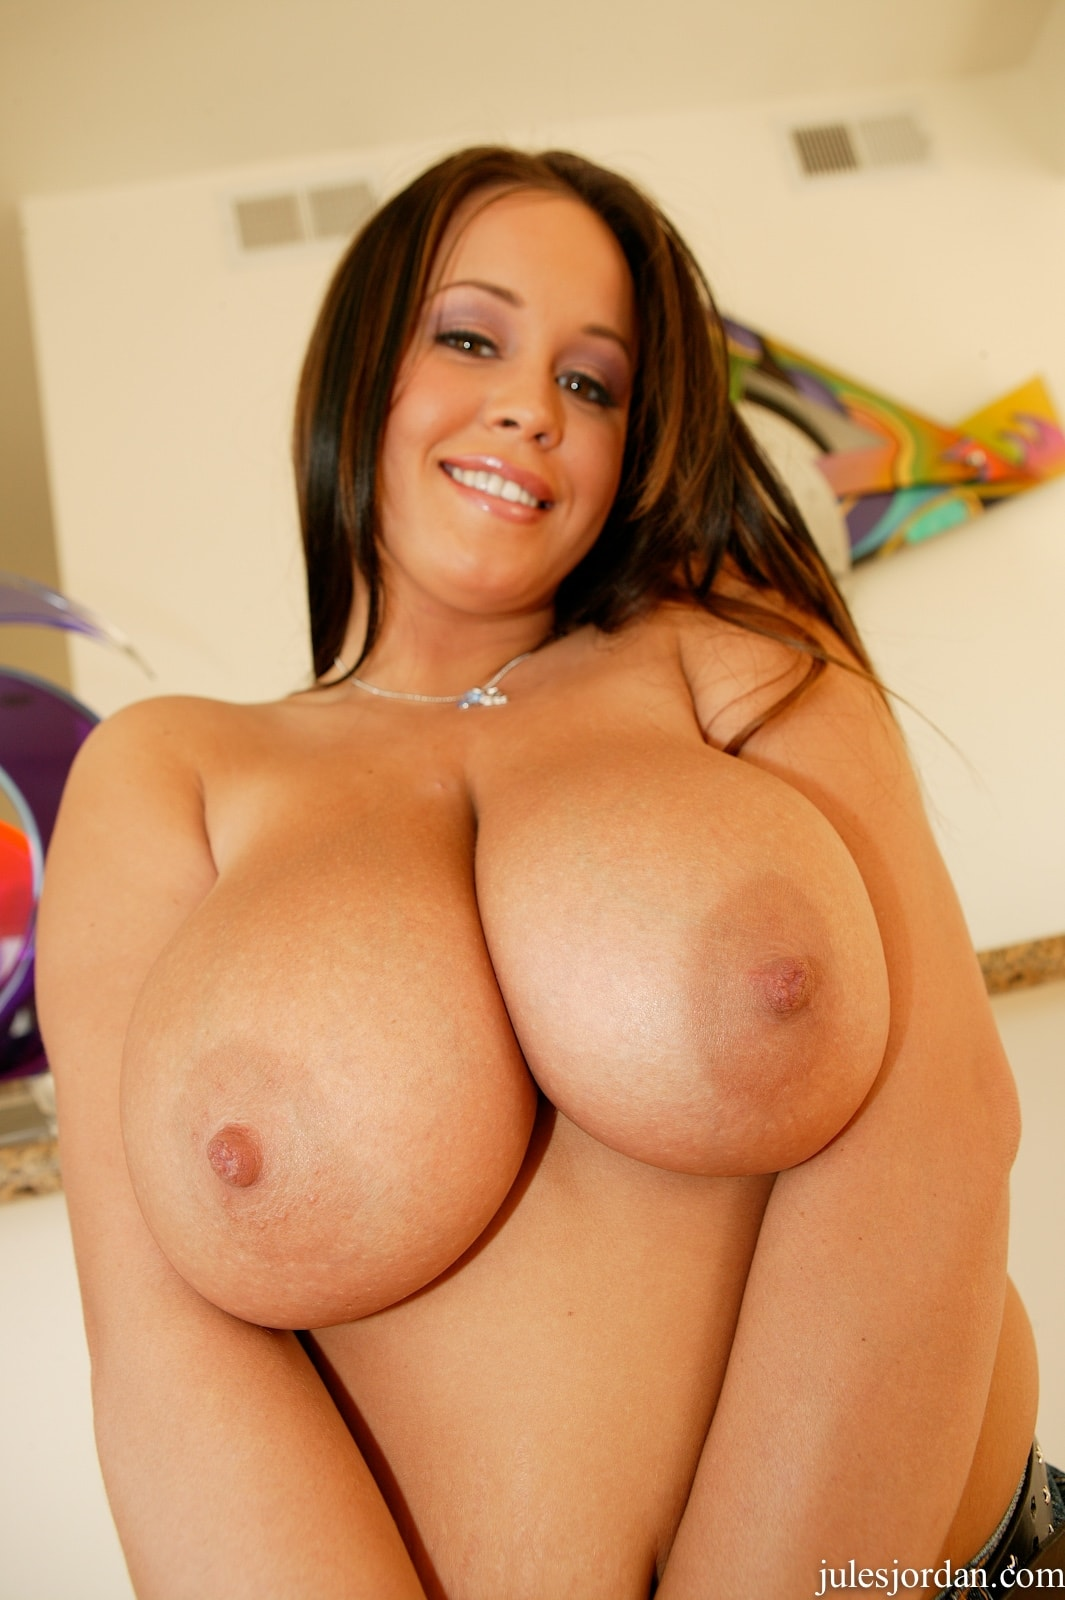 Jules Jordan 'Natural Big Tits' starring Brandy Taylor (Photo 3)